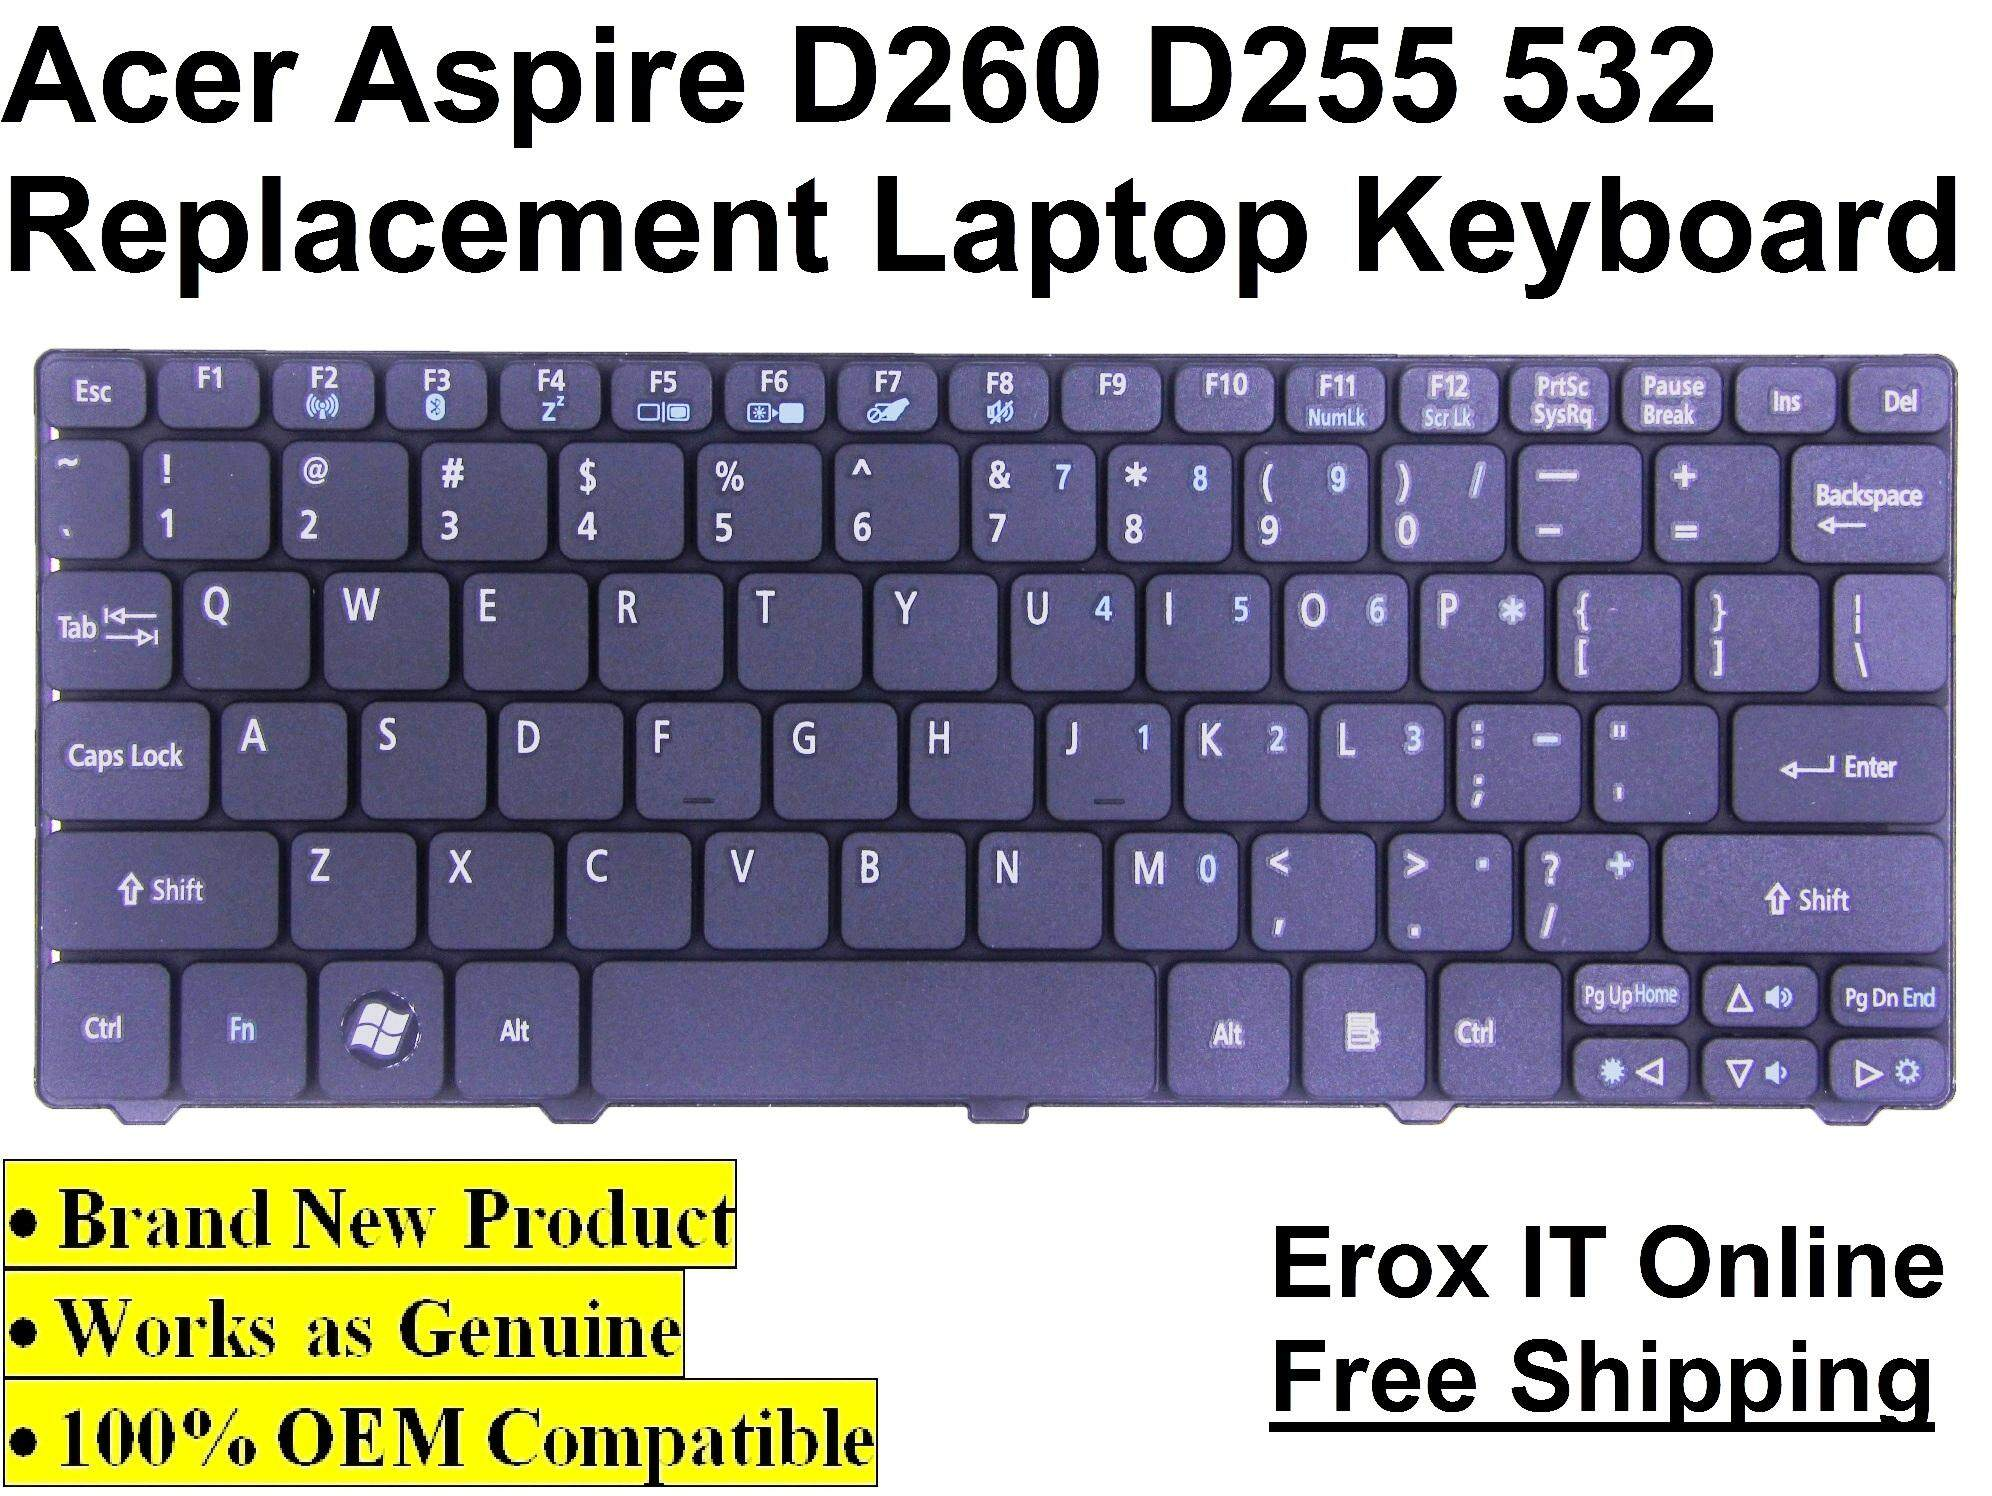 Acer Aspire One D255E Replacement Keyboard /Acer D260 Keyboard Malaysia